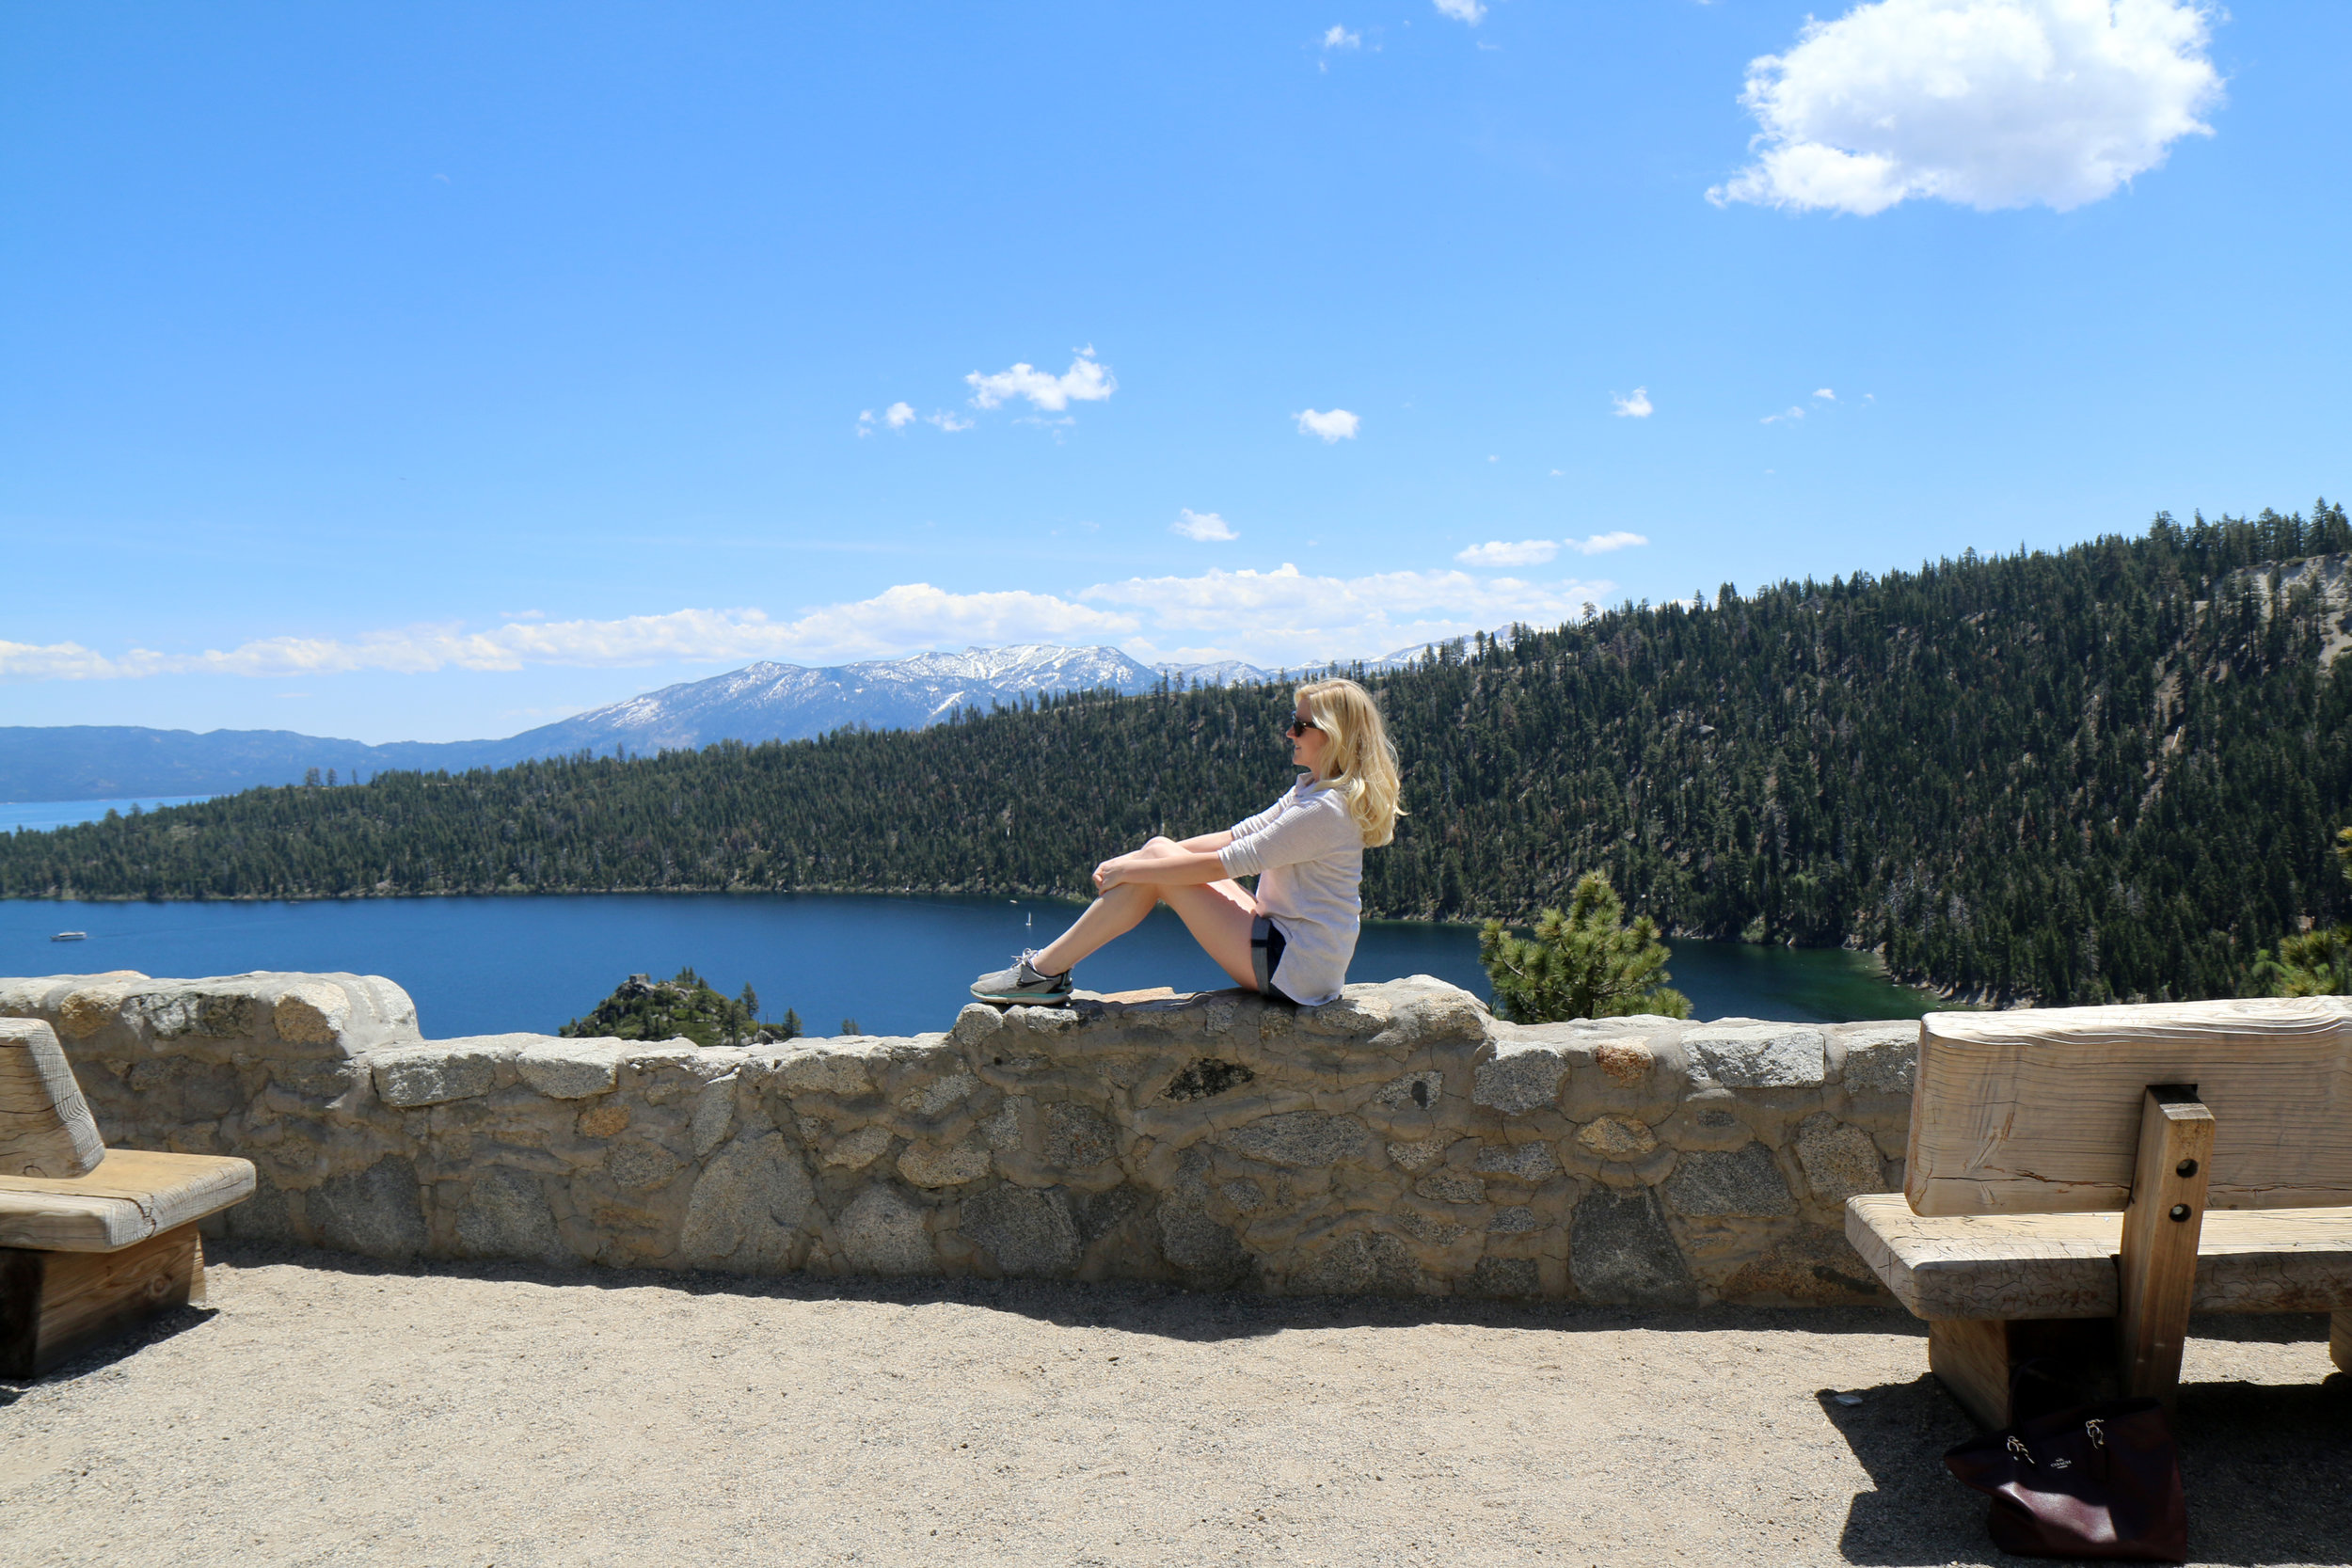 Tahoe with lifestyle and travel bloggers Bri Sul and Caitlin Mcaninch